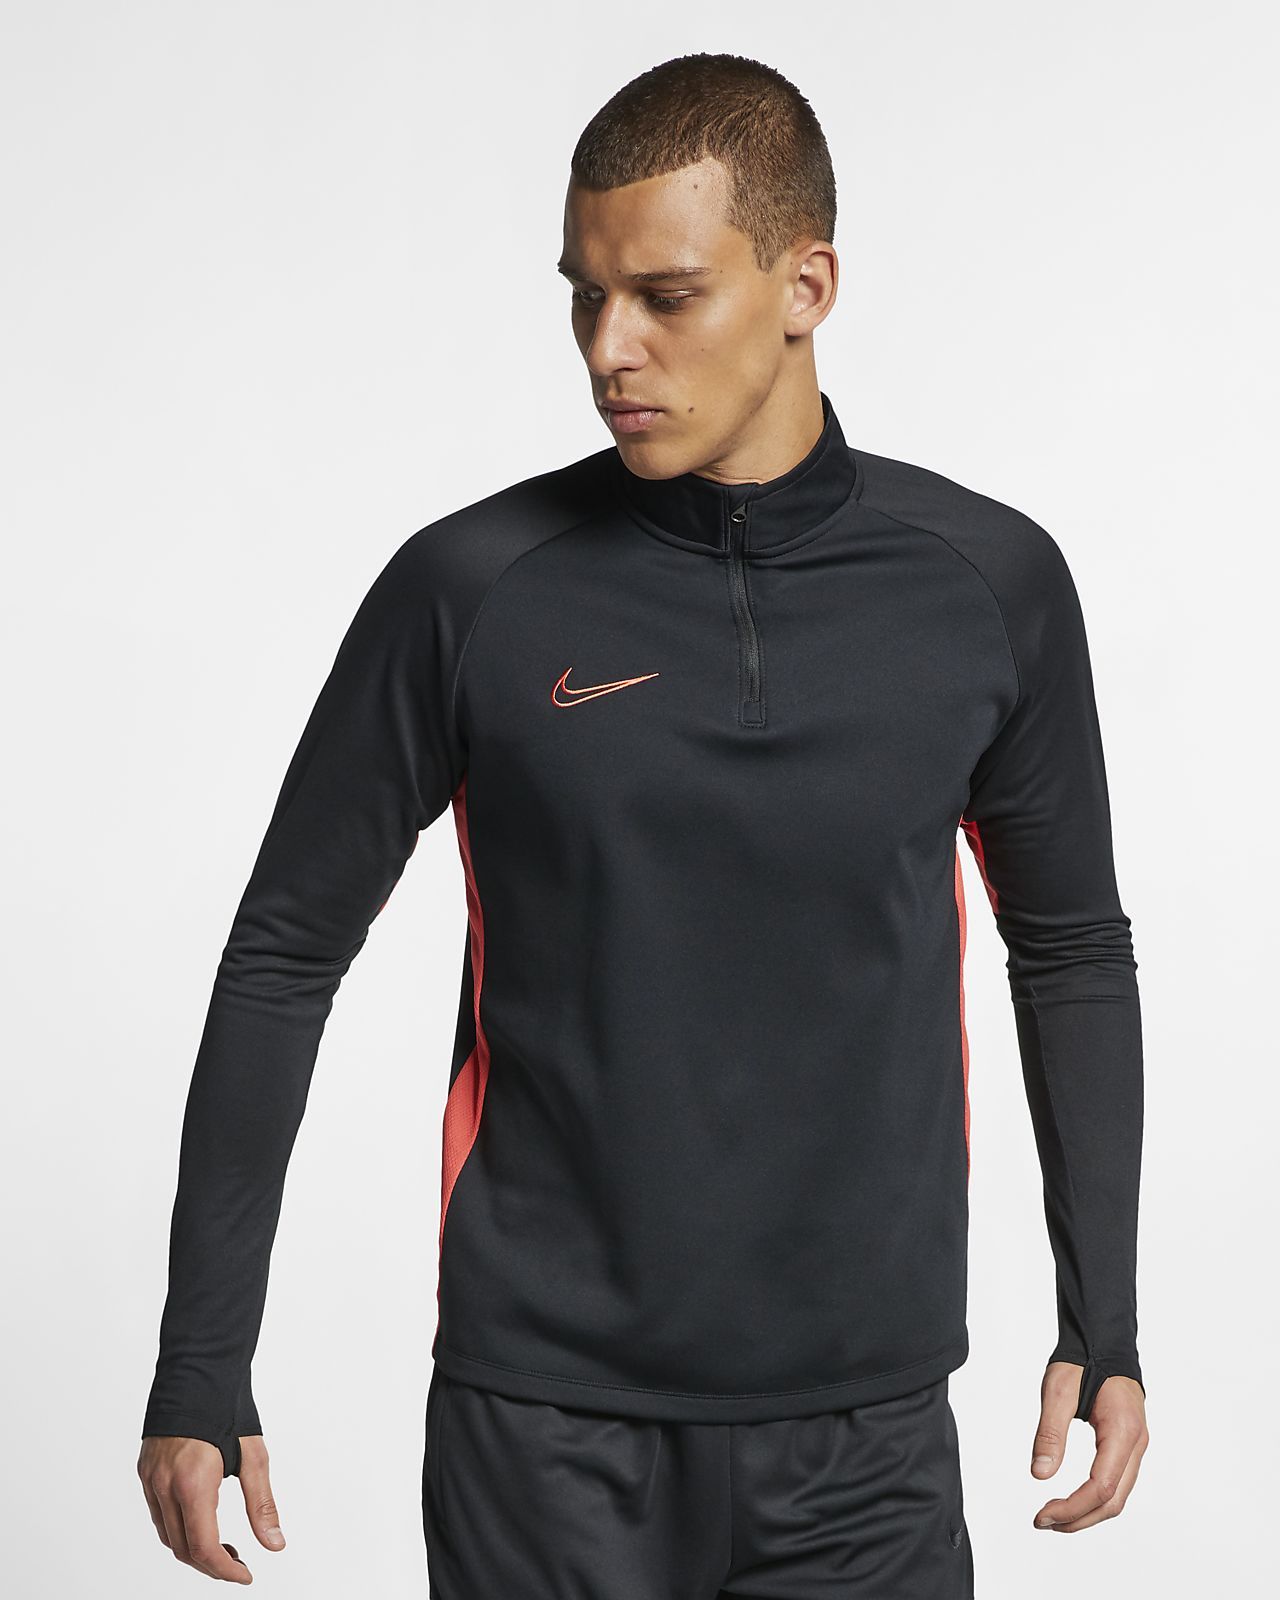 Nike Dri-FIT Academy Men's Football Drill Top